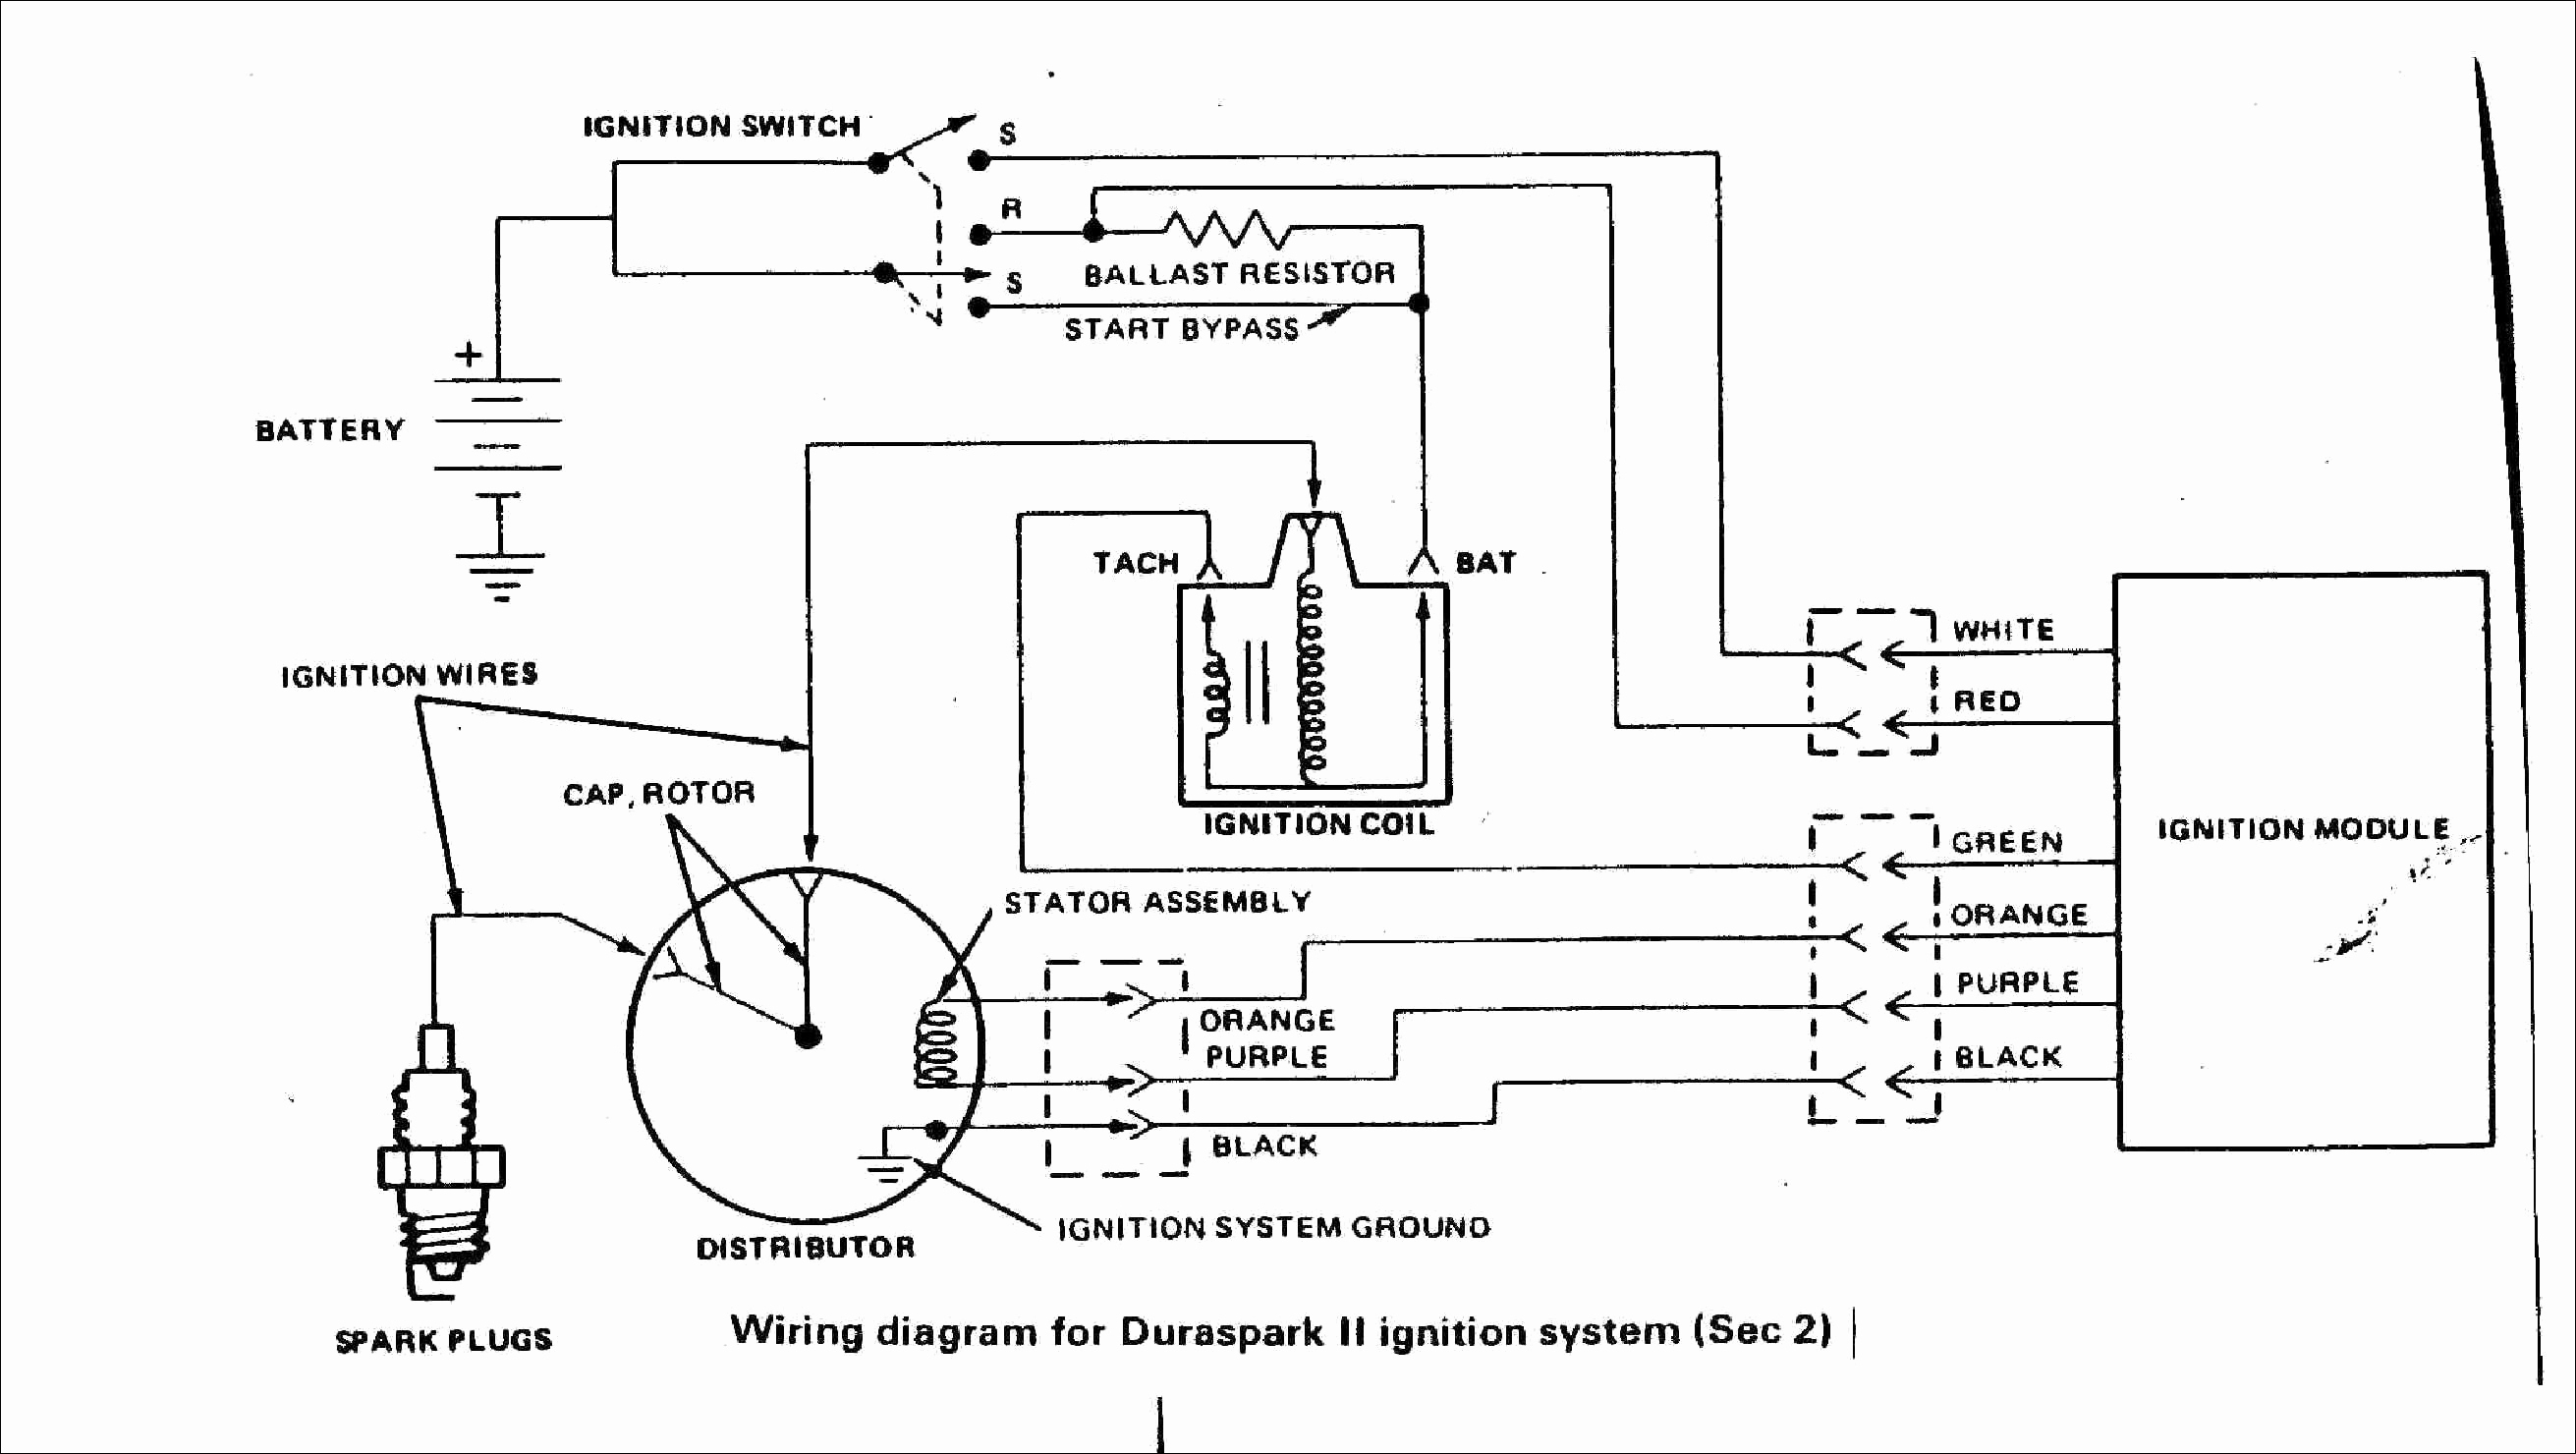 Mower Switch Wiring Diagram | Wiring Diagram - Mtd Riding Lawn Mower Wiring Diagram